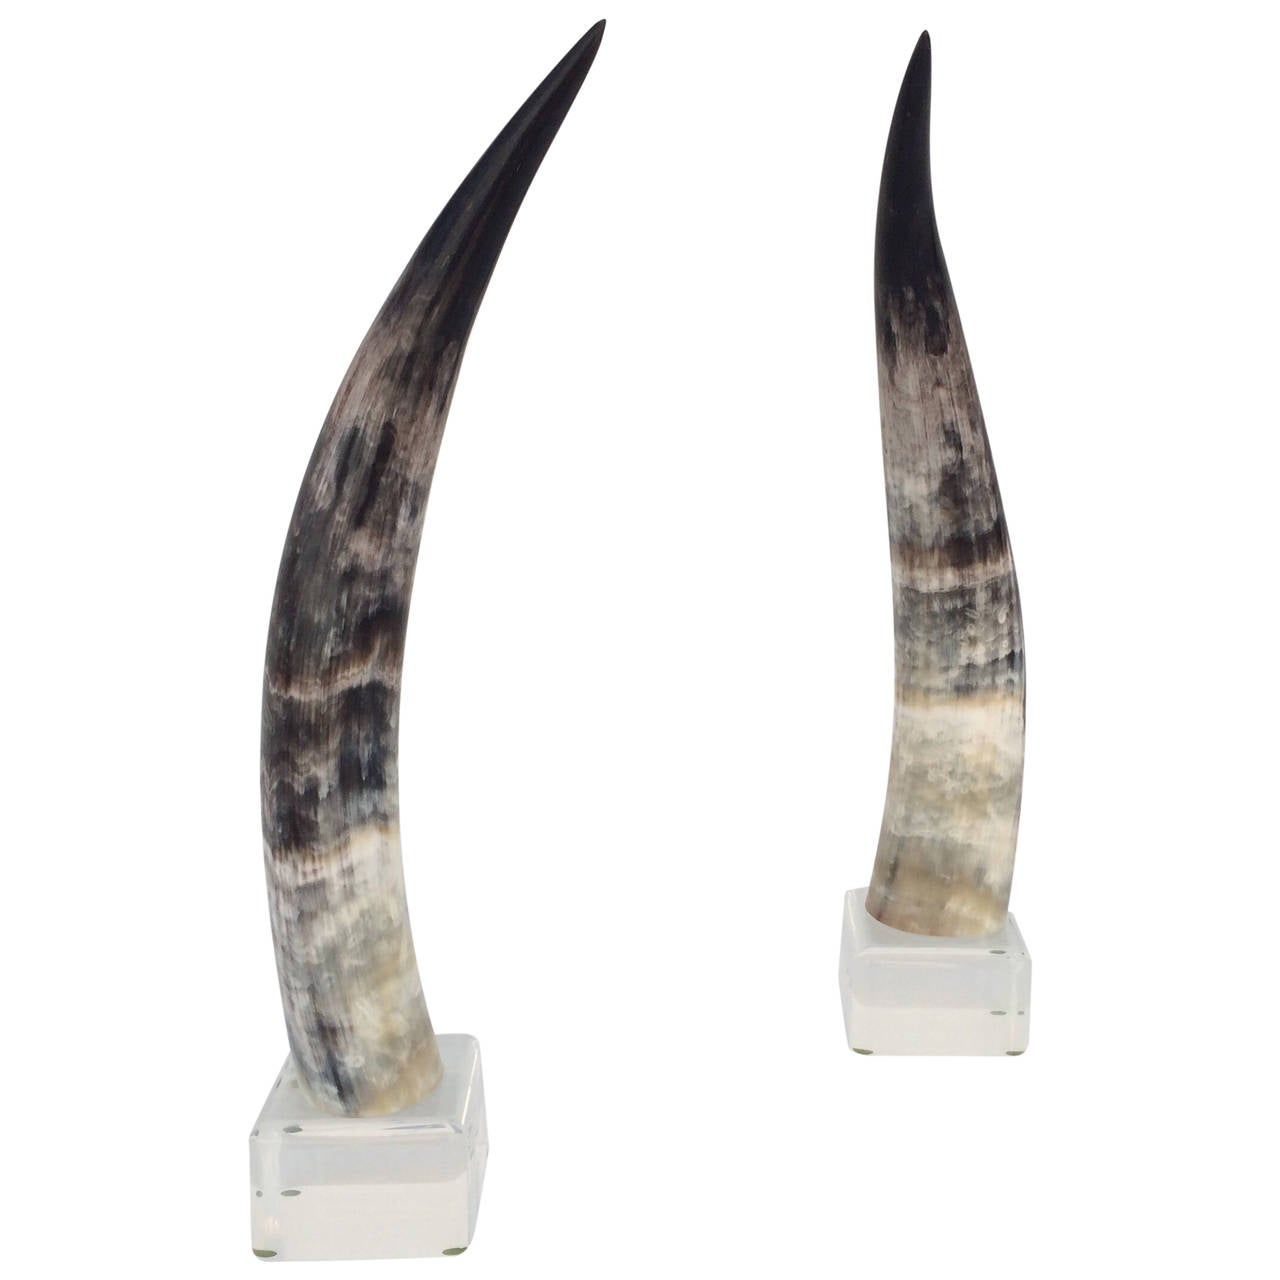 Pair of Mounted Steer Horns on Acrylic Bases